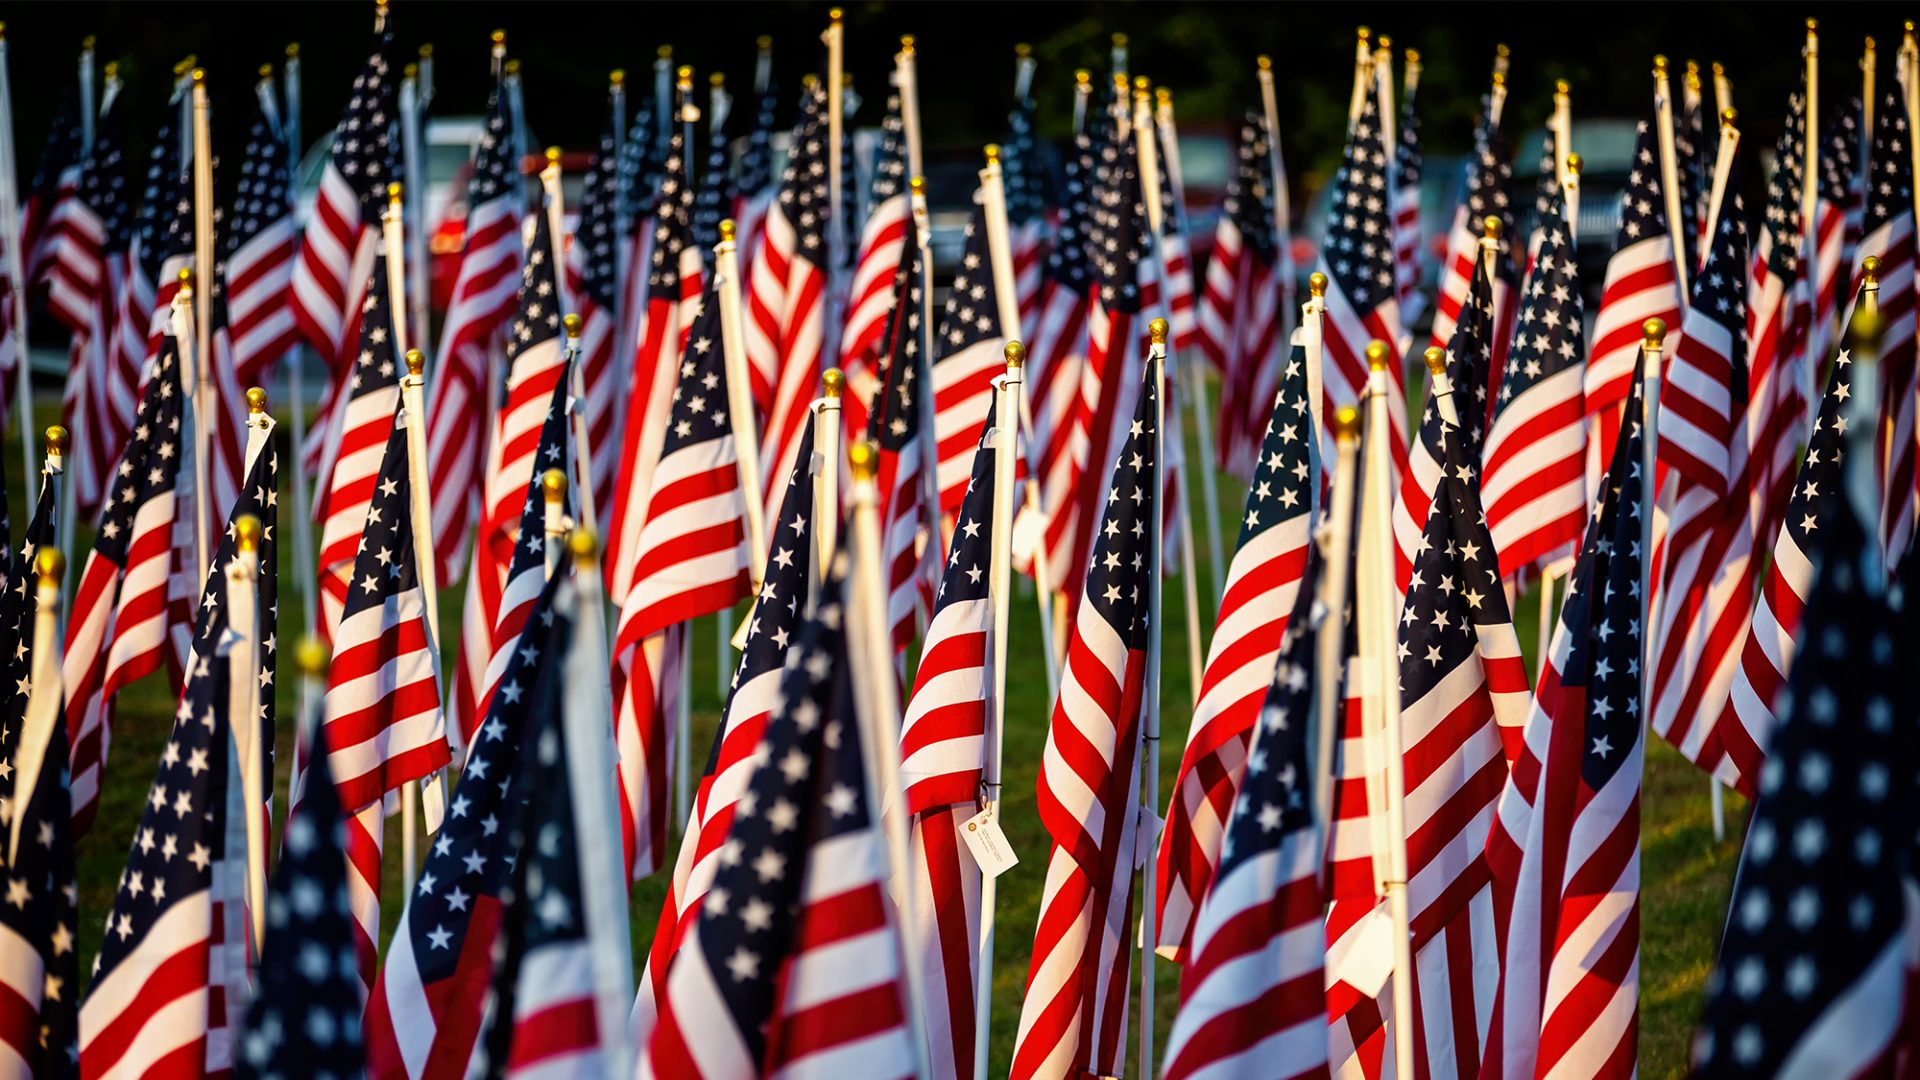 The sun sets on rows and rows of American flags.